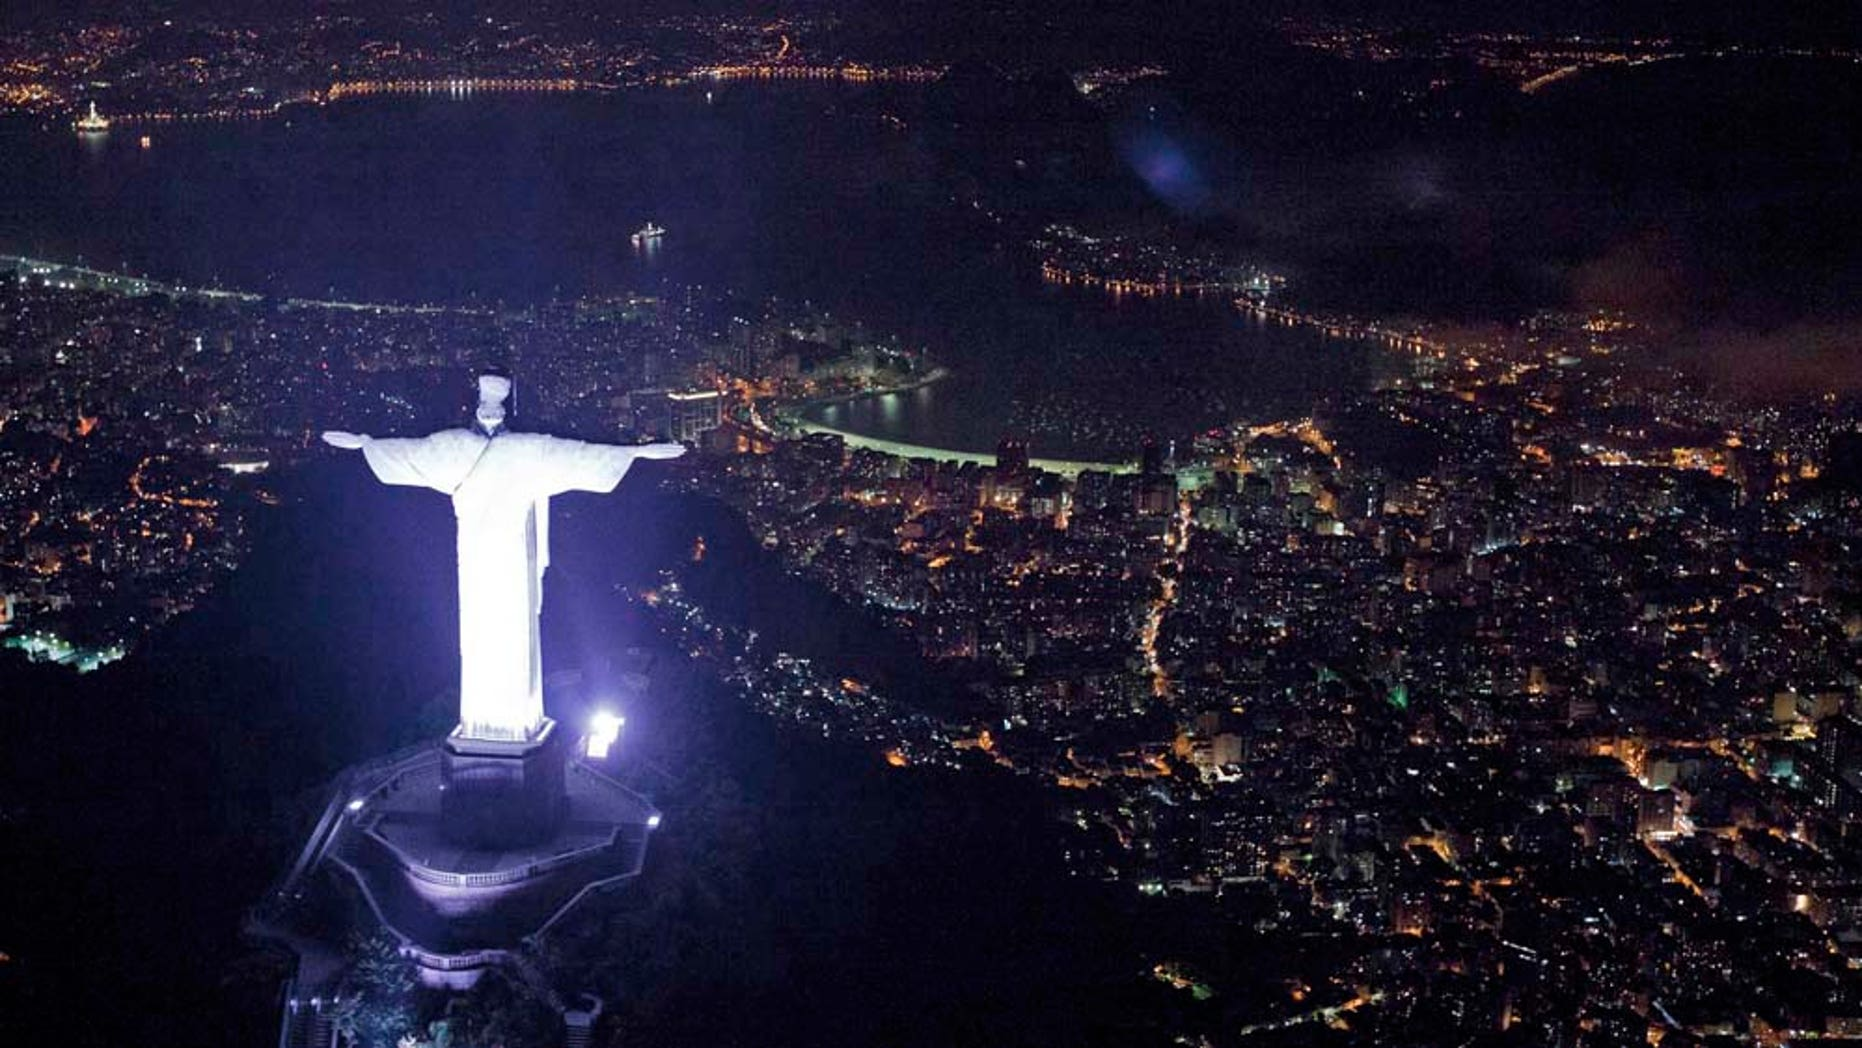 """An aerial view of the iconic Christ the Redeemer statue before the lights that illuminate the statue are switched off to observe an hour of voluntary darkness for the global """"Earth Hour"""" campaign, in Rio de Janeiro, Brazil, Saturday March 26, 2011.  An estimated 1,000 landmarks' lights were turned off worldwide for 60 minutes at 8:30 p.m. local time, as a symbolic act to raise awareness about climate change and to make people aware of everyday energy use.  (AP Photo/Felipe Dana)"""